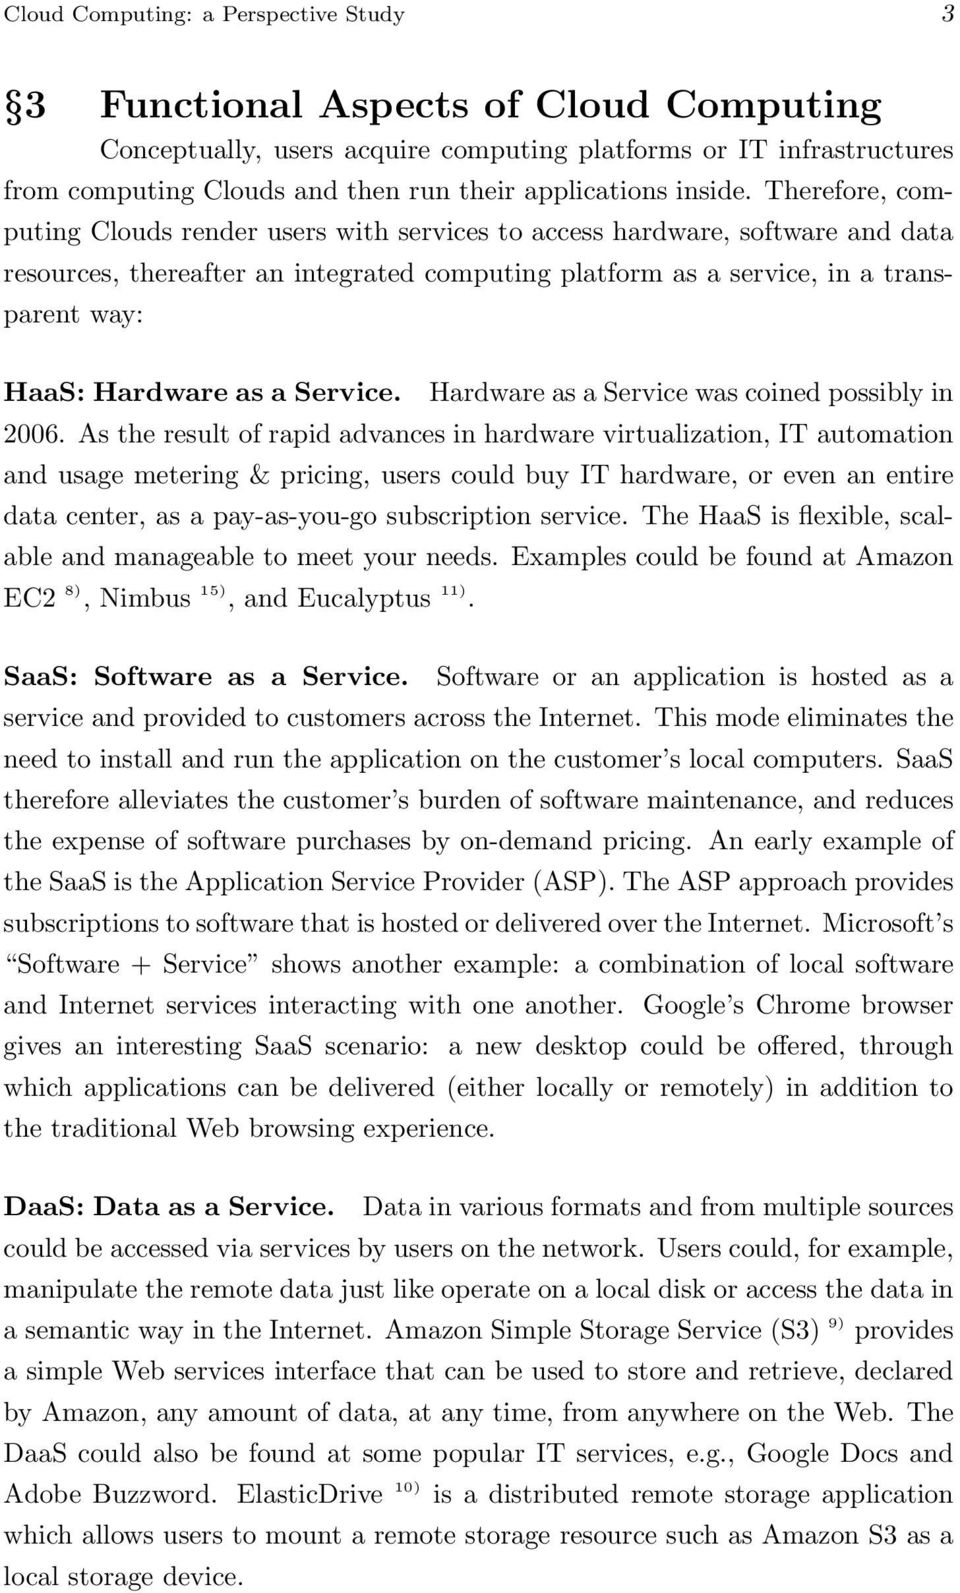 Therefore, computing Clouds render users with services to access hardware, software and data resources, thereafter an integrated computing platform as a service, in a transparent way: HaaS: Hardware